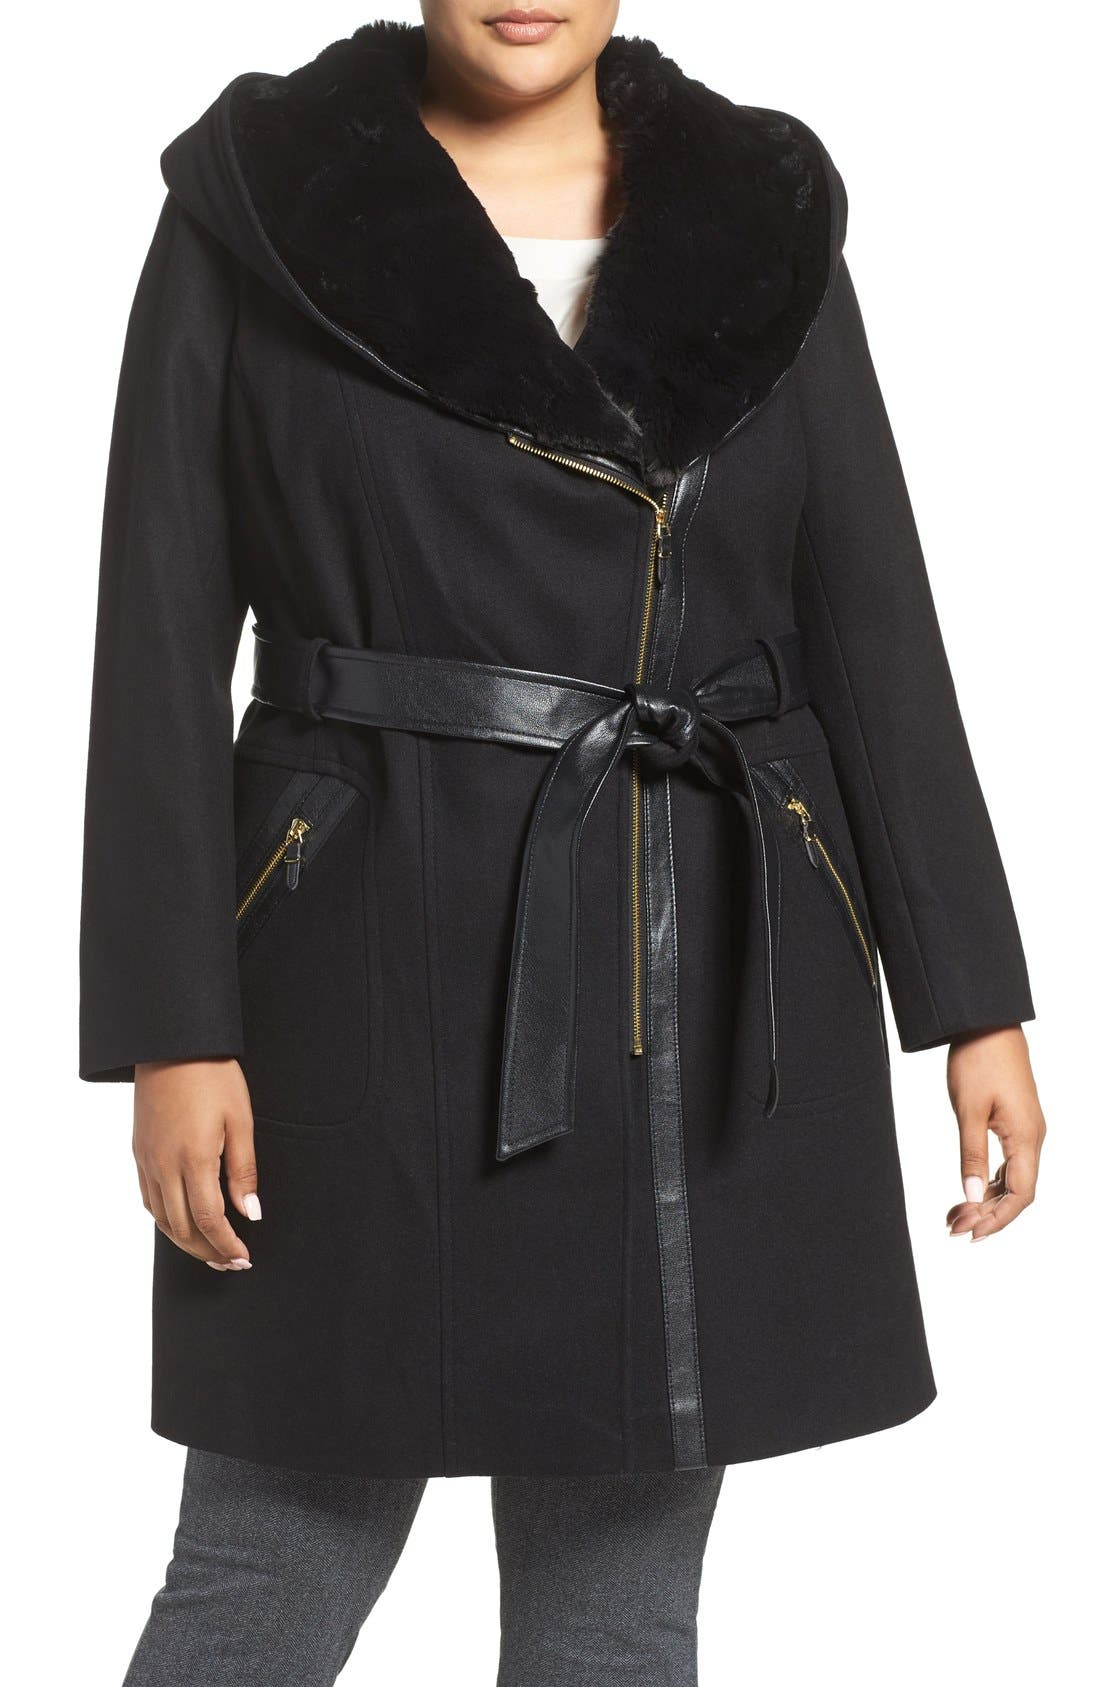 Alternate Image 1 Selected - Via Spiga Wool Blend Coat with Faux Fur Trim